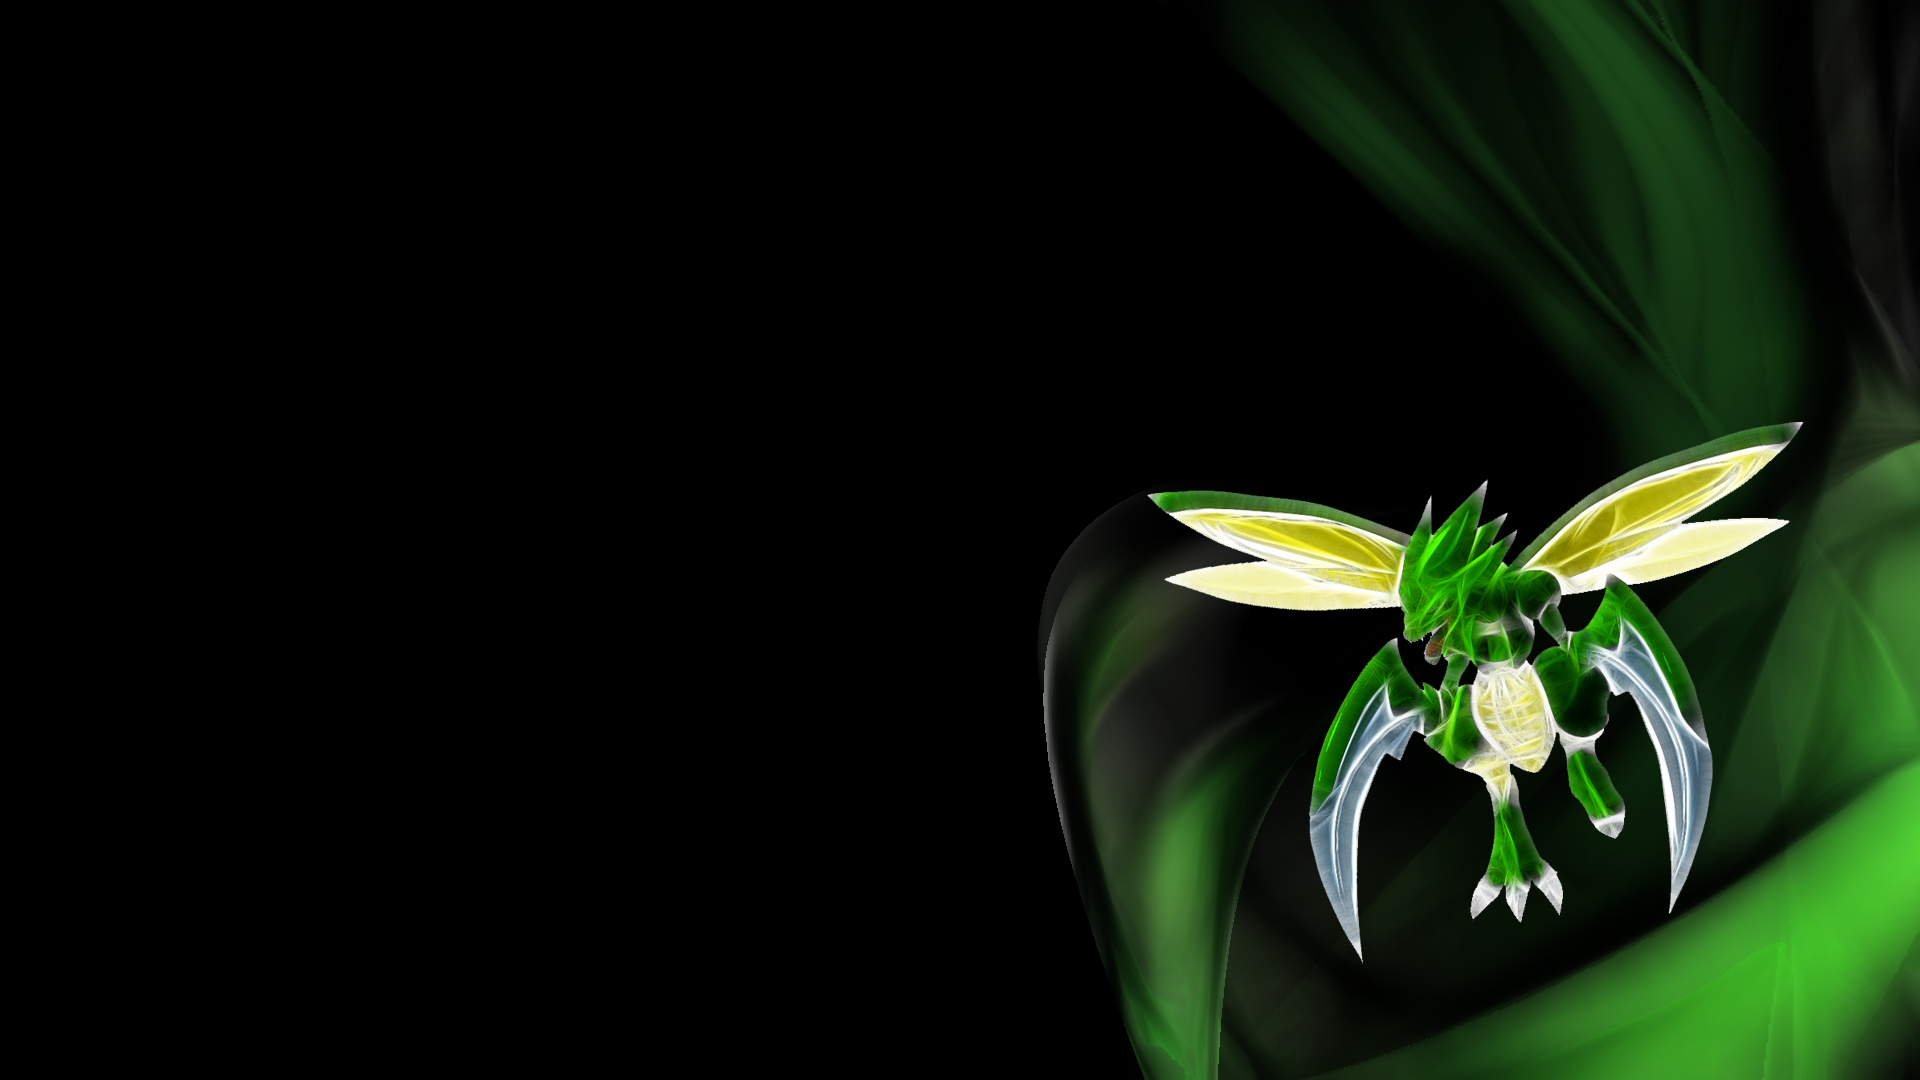 Pokemon Scyther Wallpaper 1920x1080 Pokemon Scyther Black 1920x1080